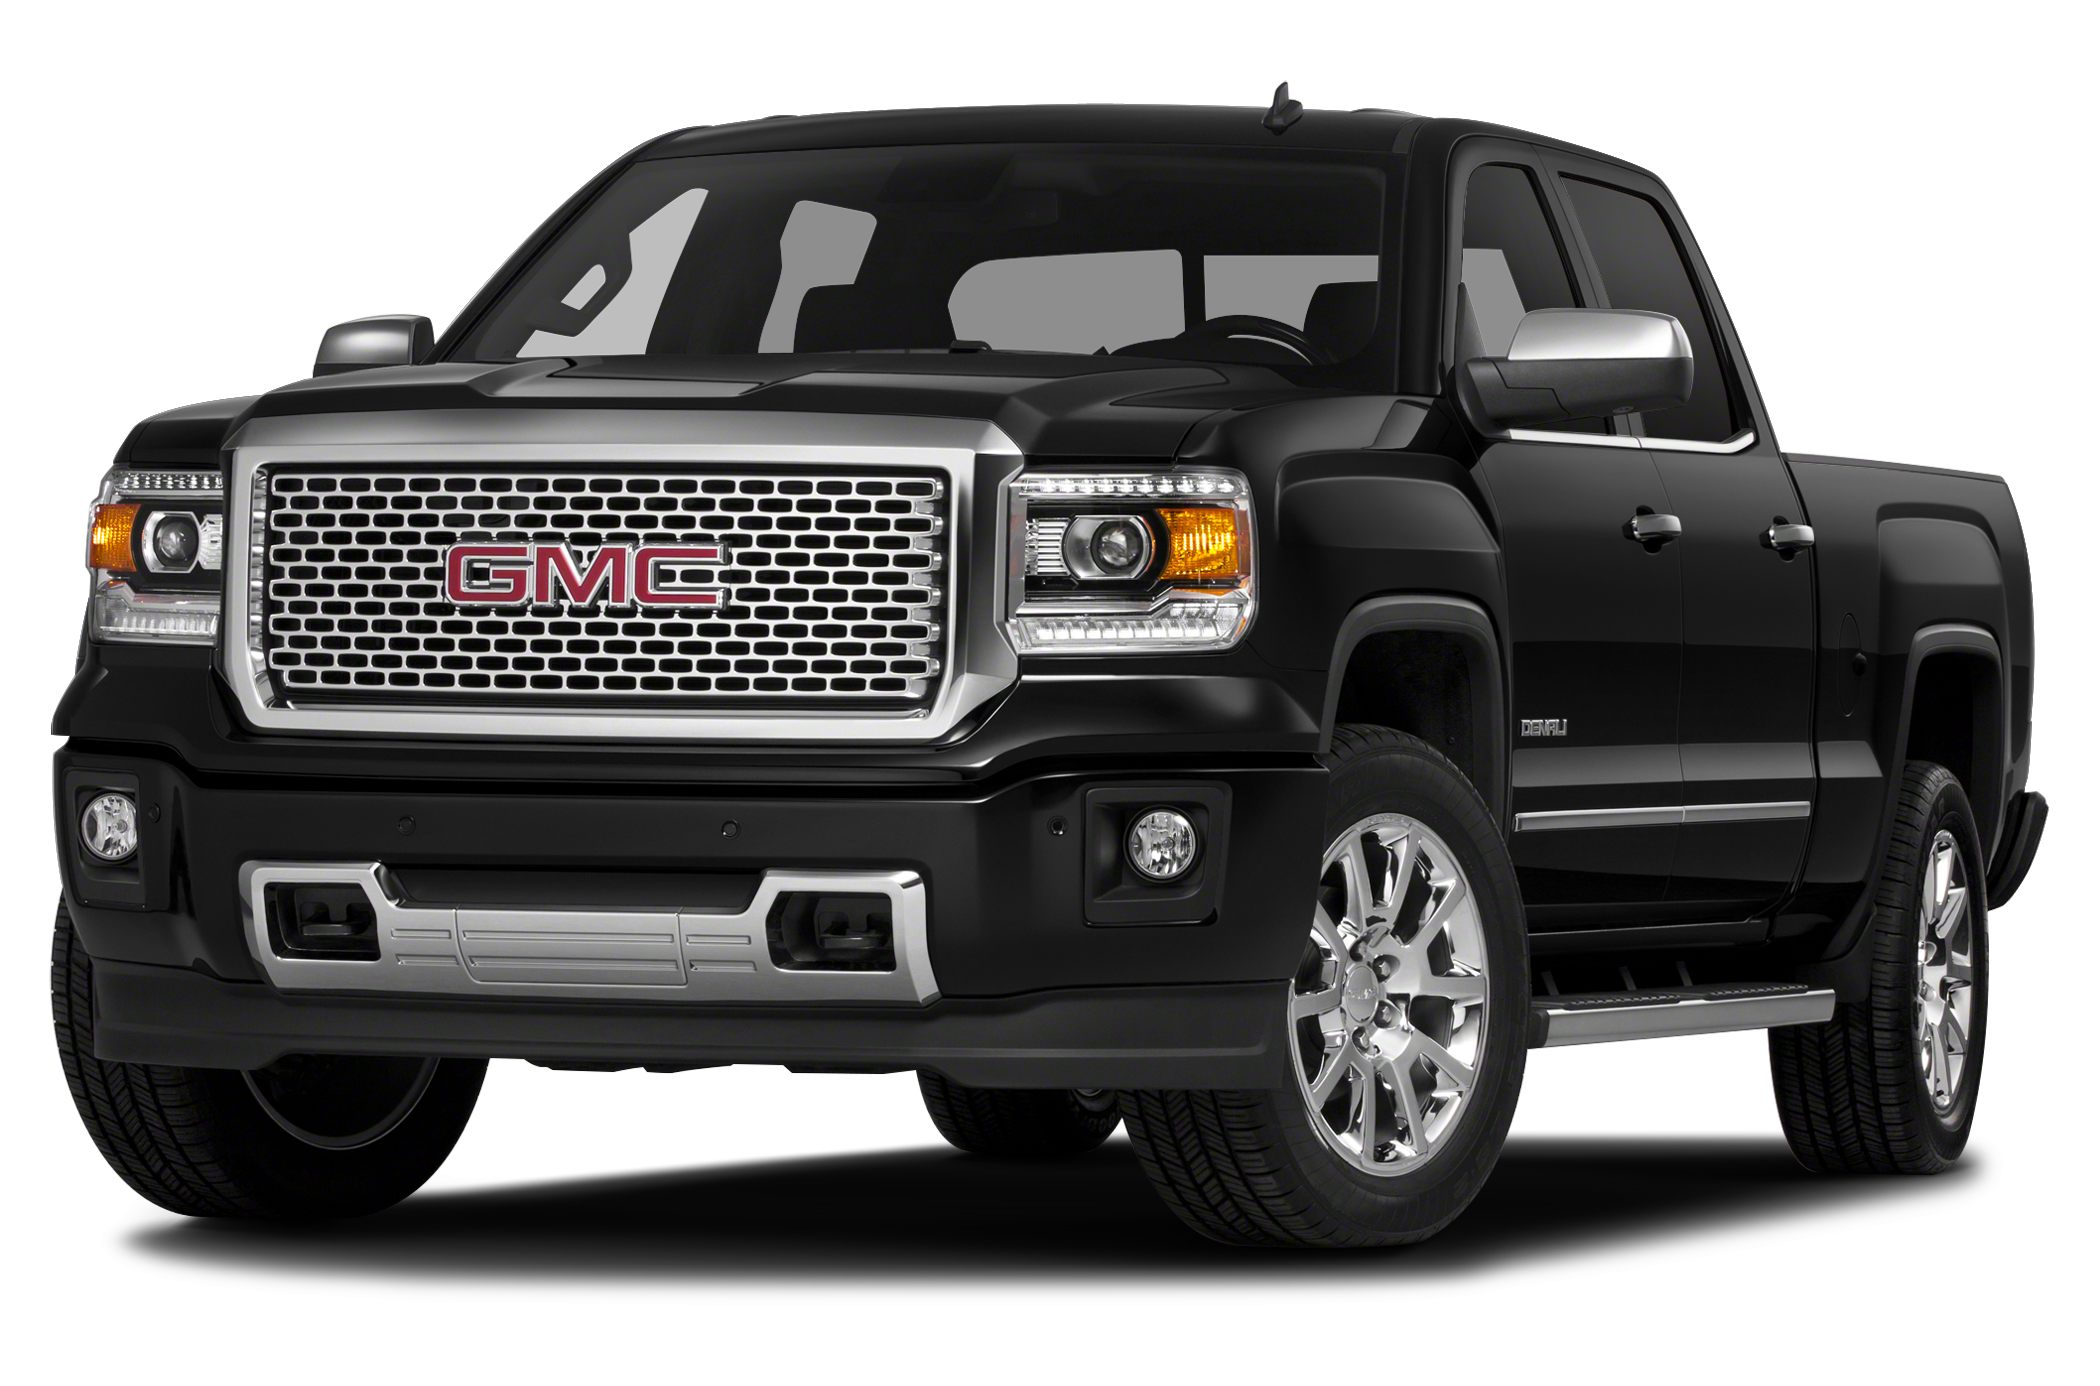 2015 Gmc Sierra 1500 Denali 4x4 Crew Cab 6 6 Ft Box 153 In Wb Specs And Prices